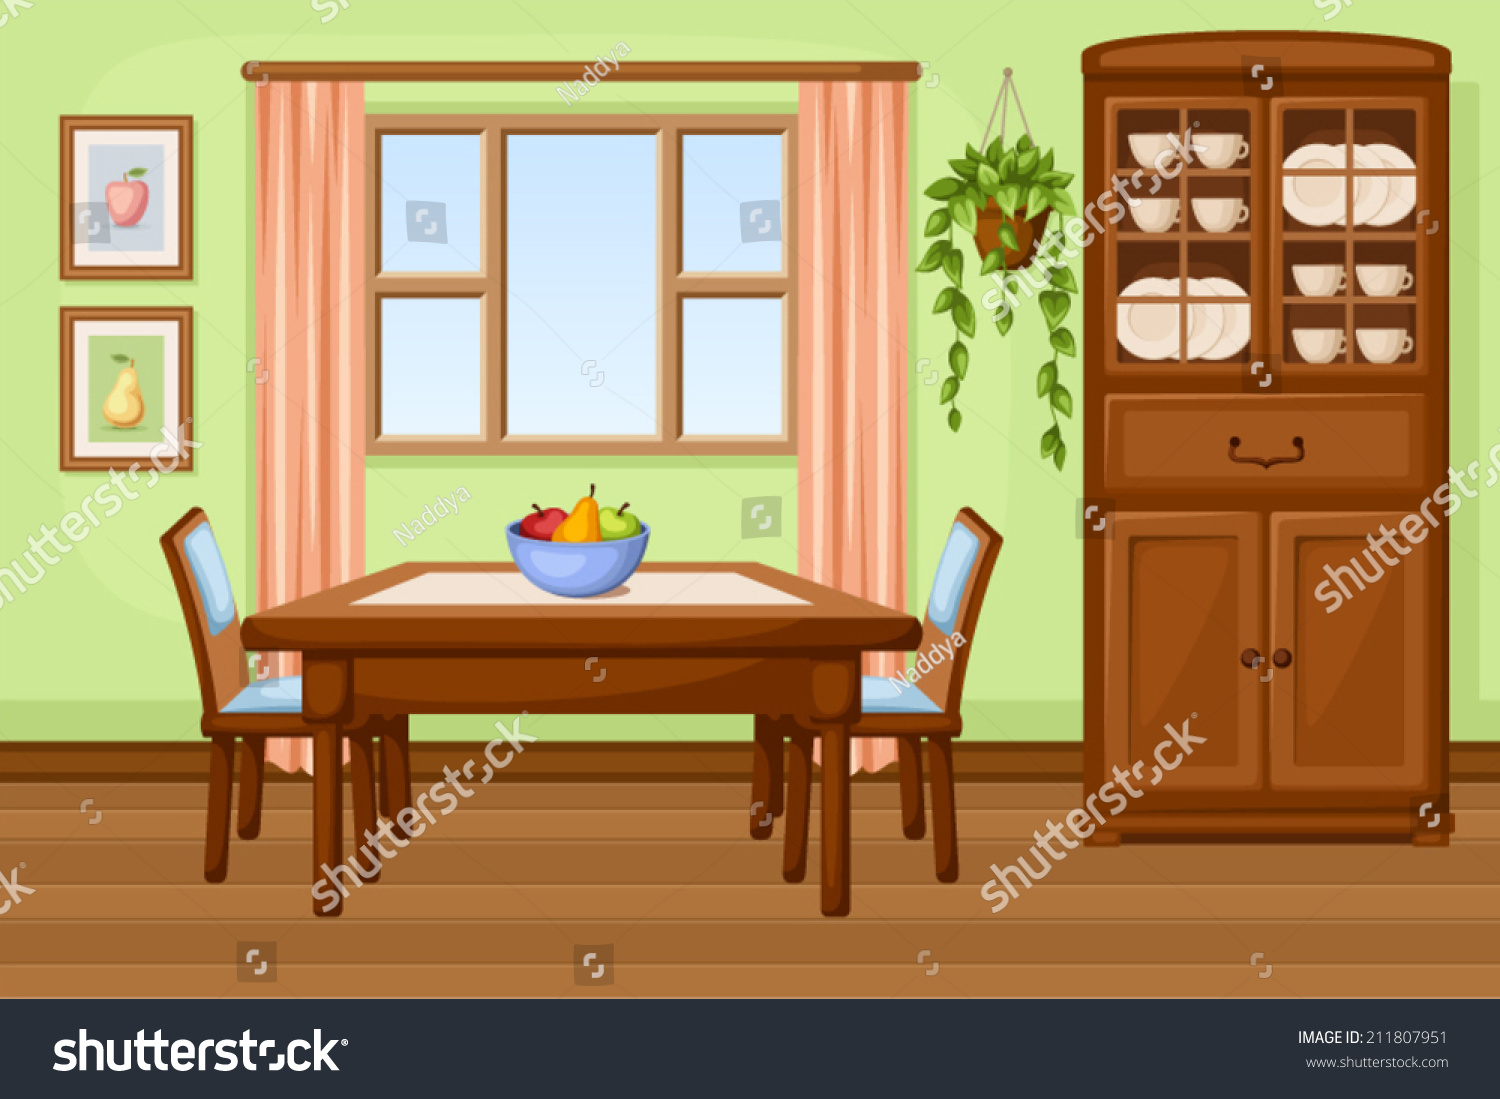 Dining room interior table cupboard vector stock vector for Room interior images